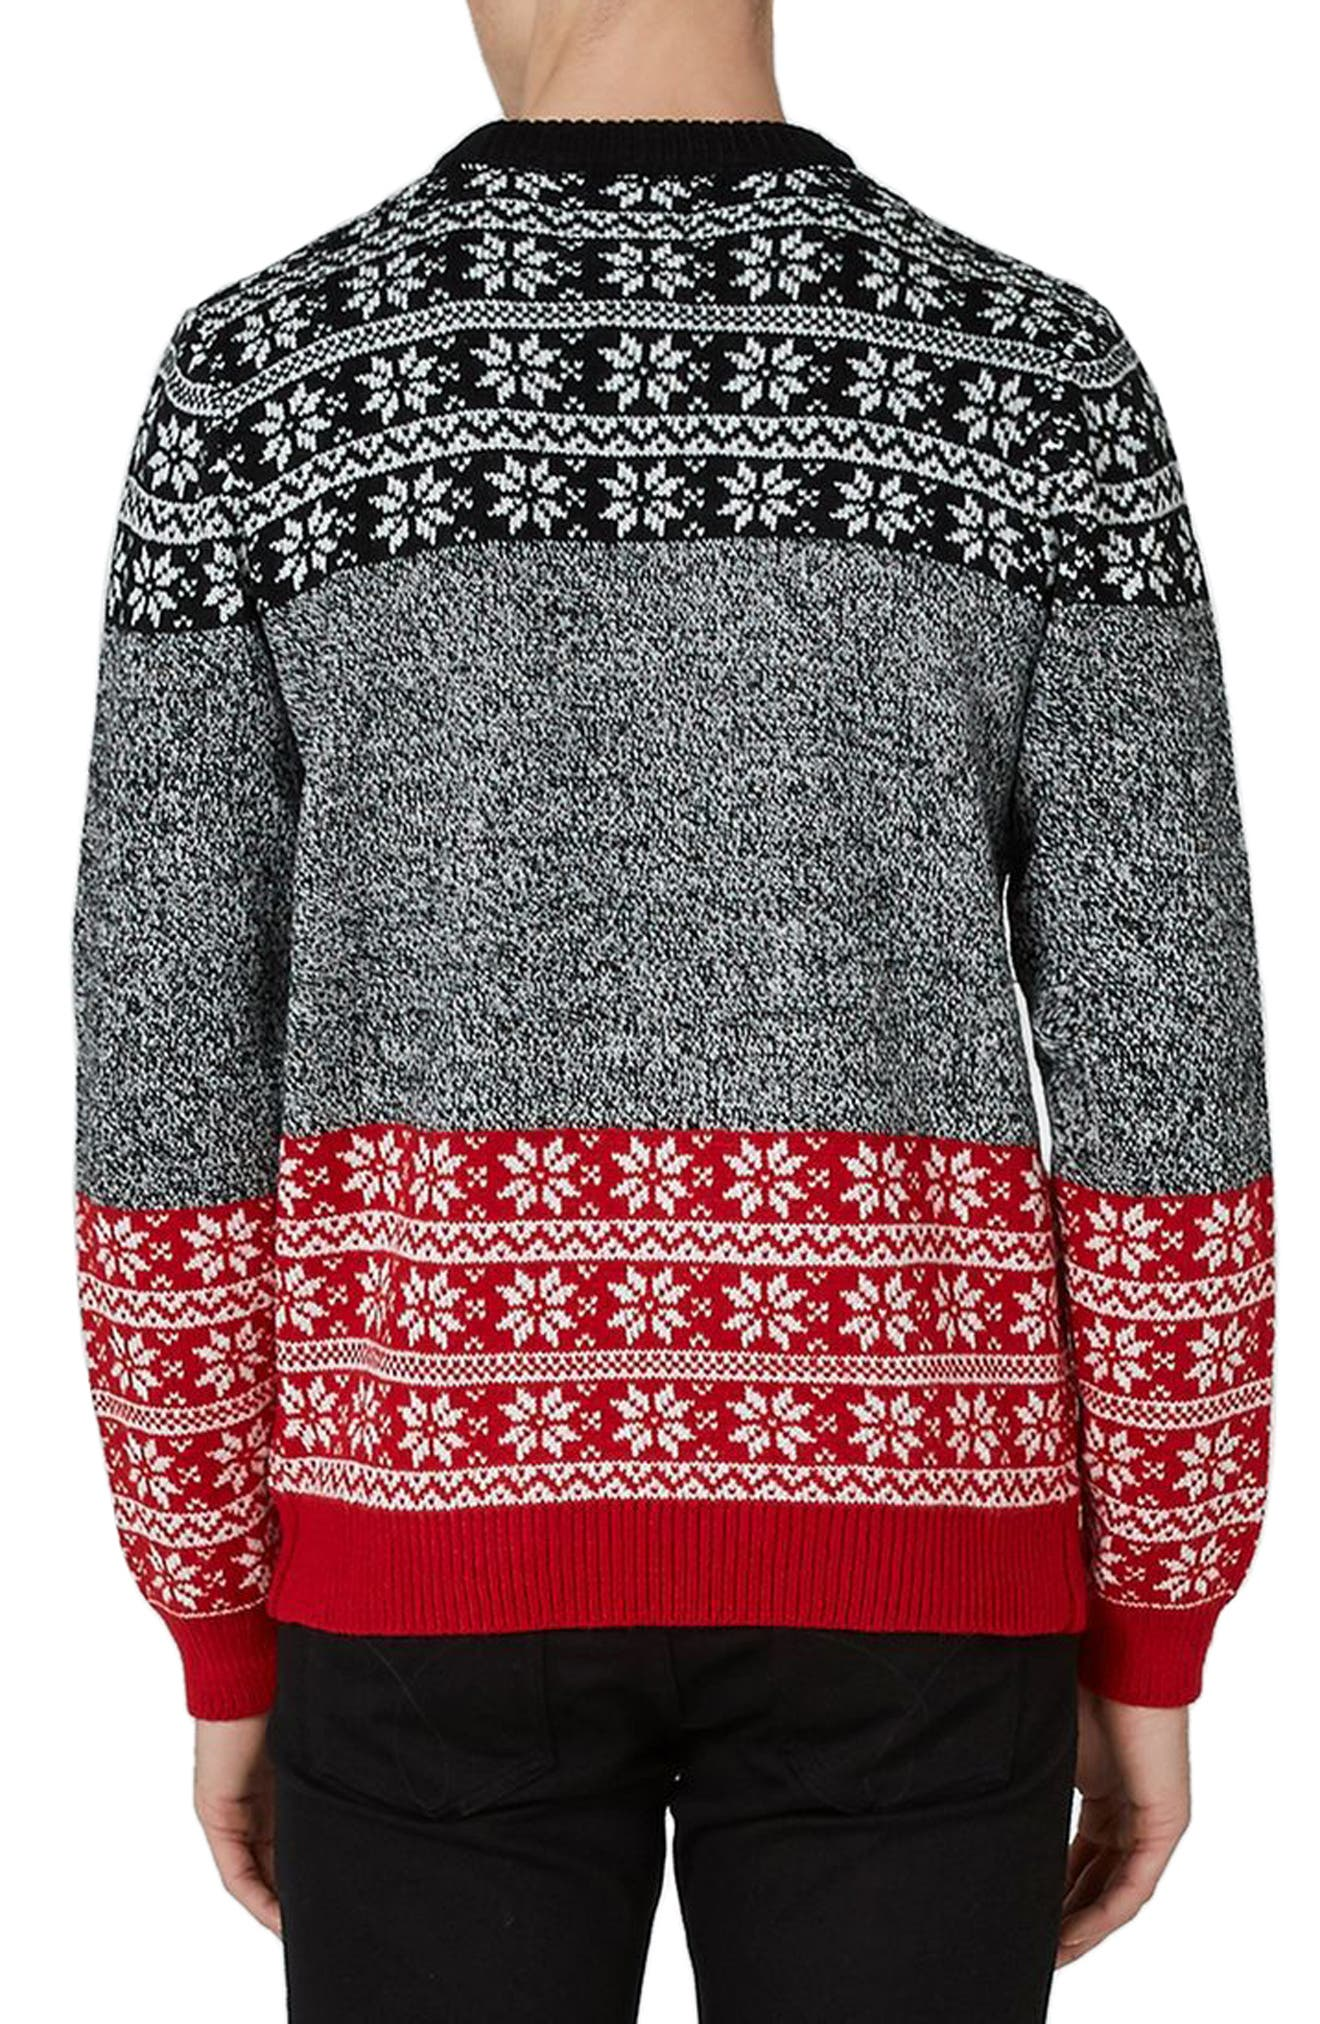 Sleigh My Name Sweater,                             Alternate thumbnail 2, color,                             Grey Multi